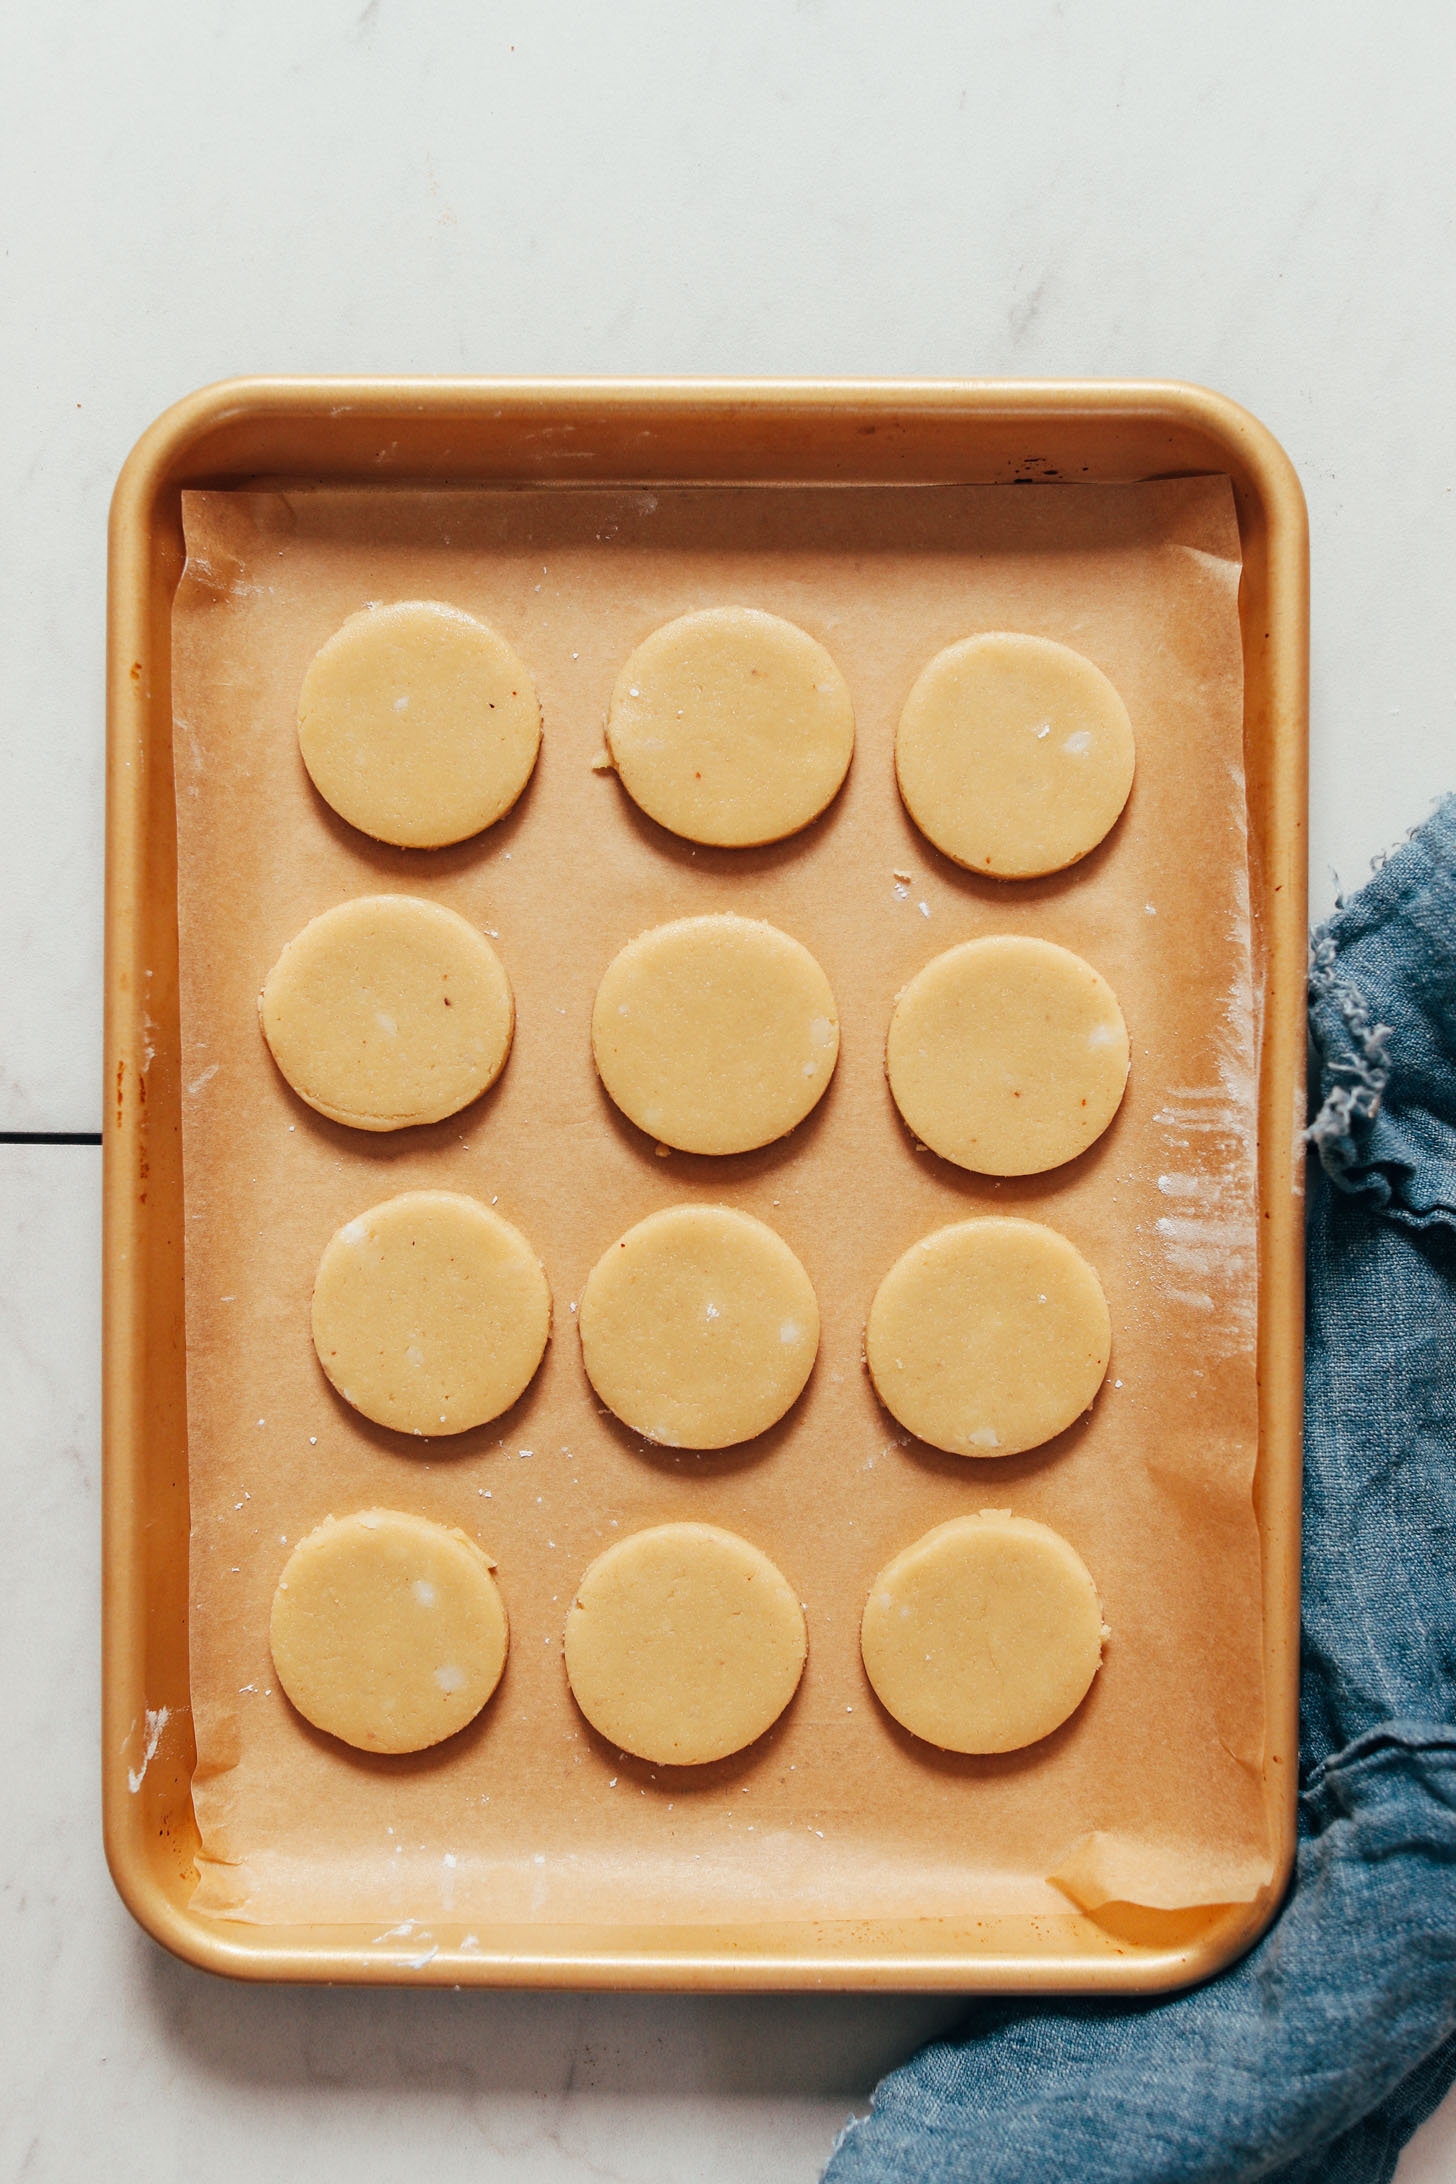 Unbaked shortbread cookie dough on a baking sheet